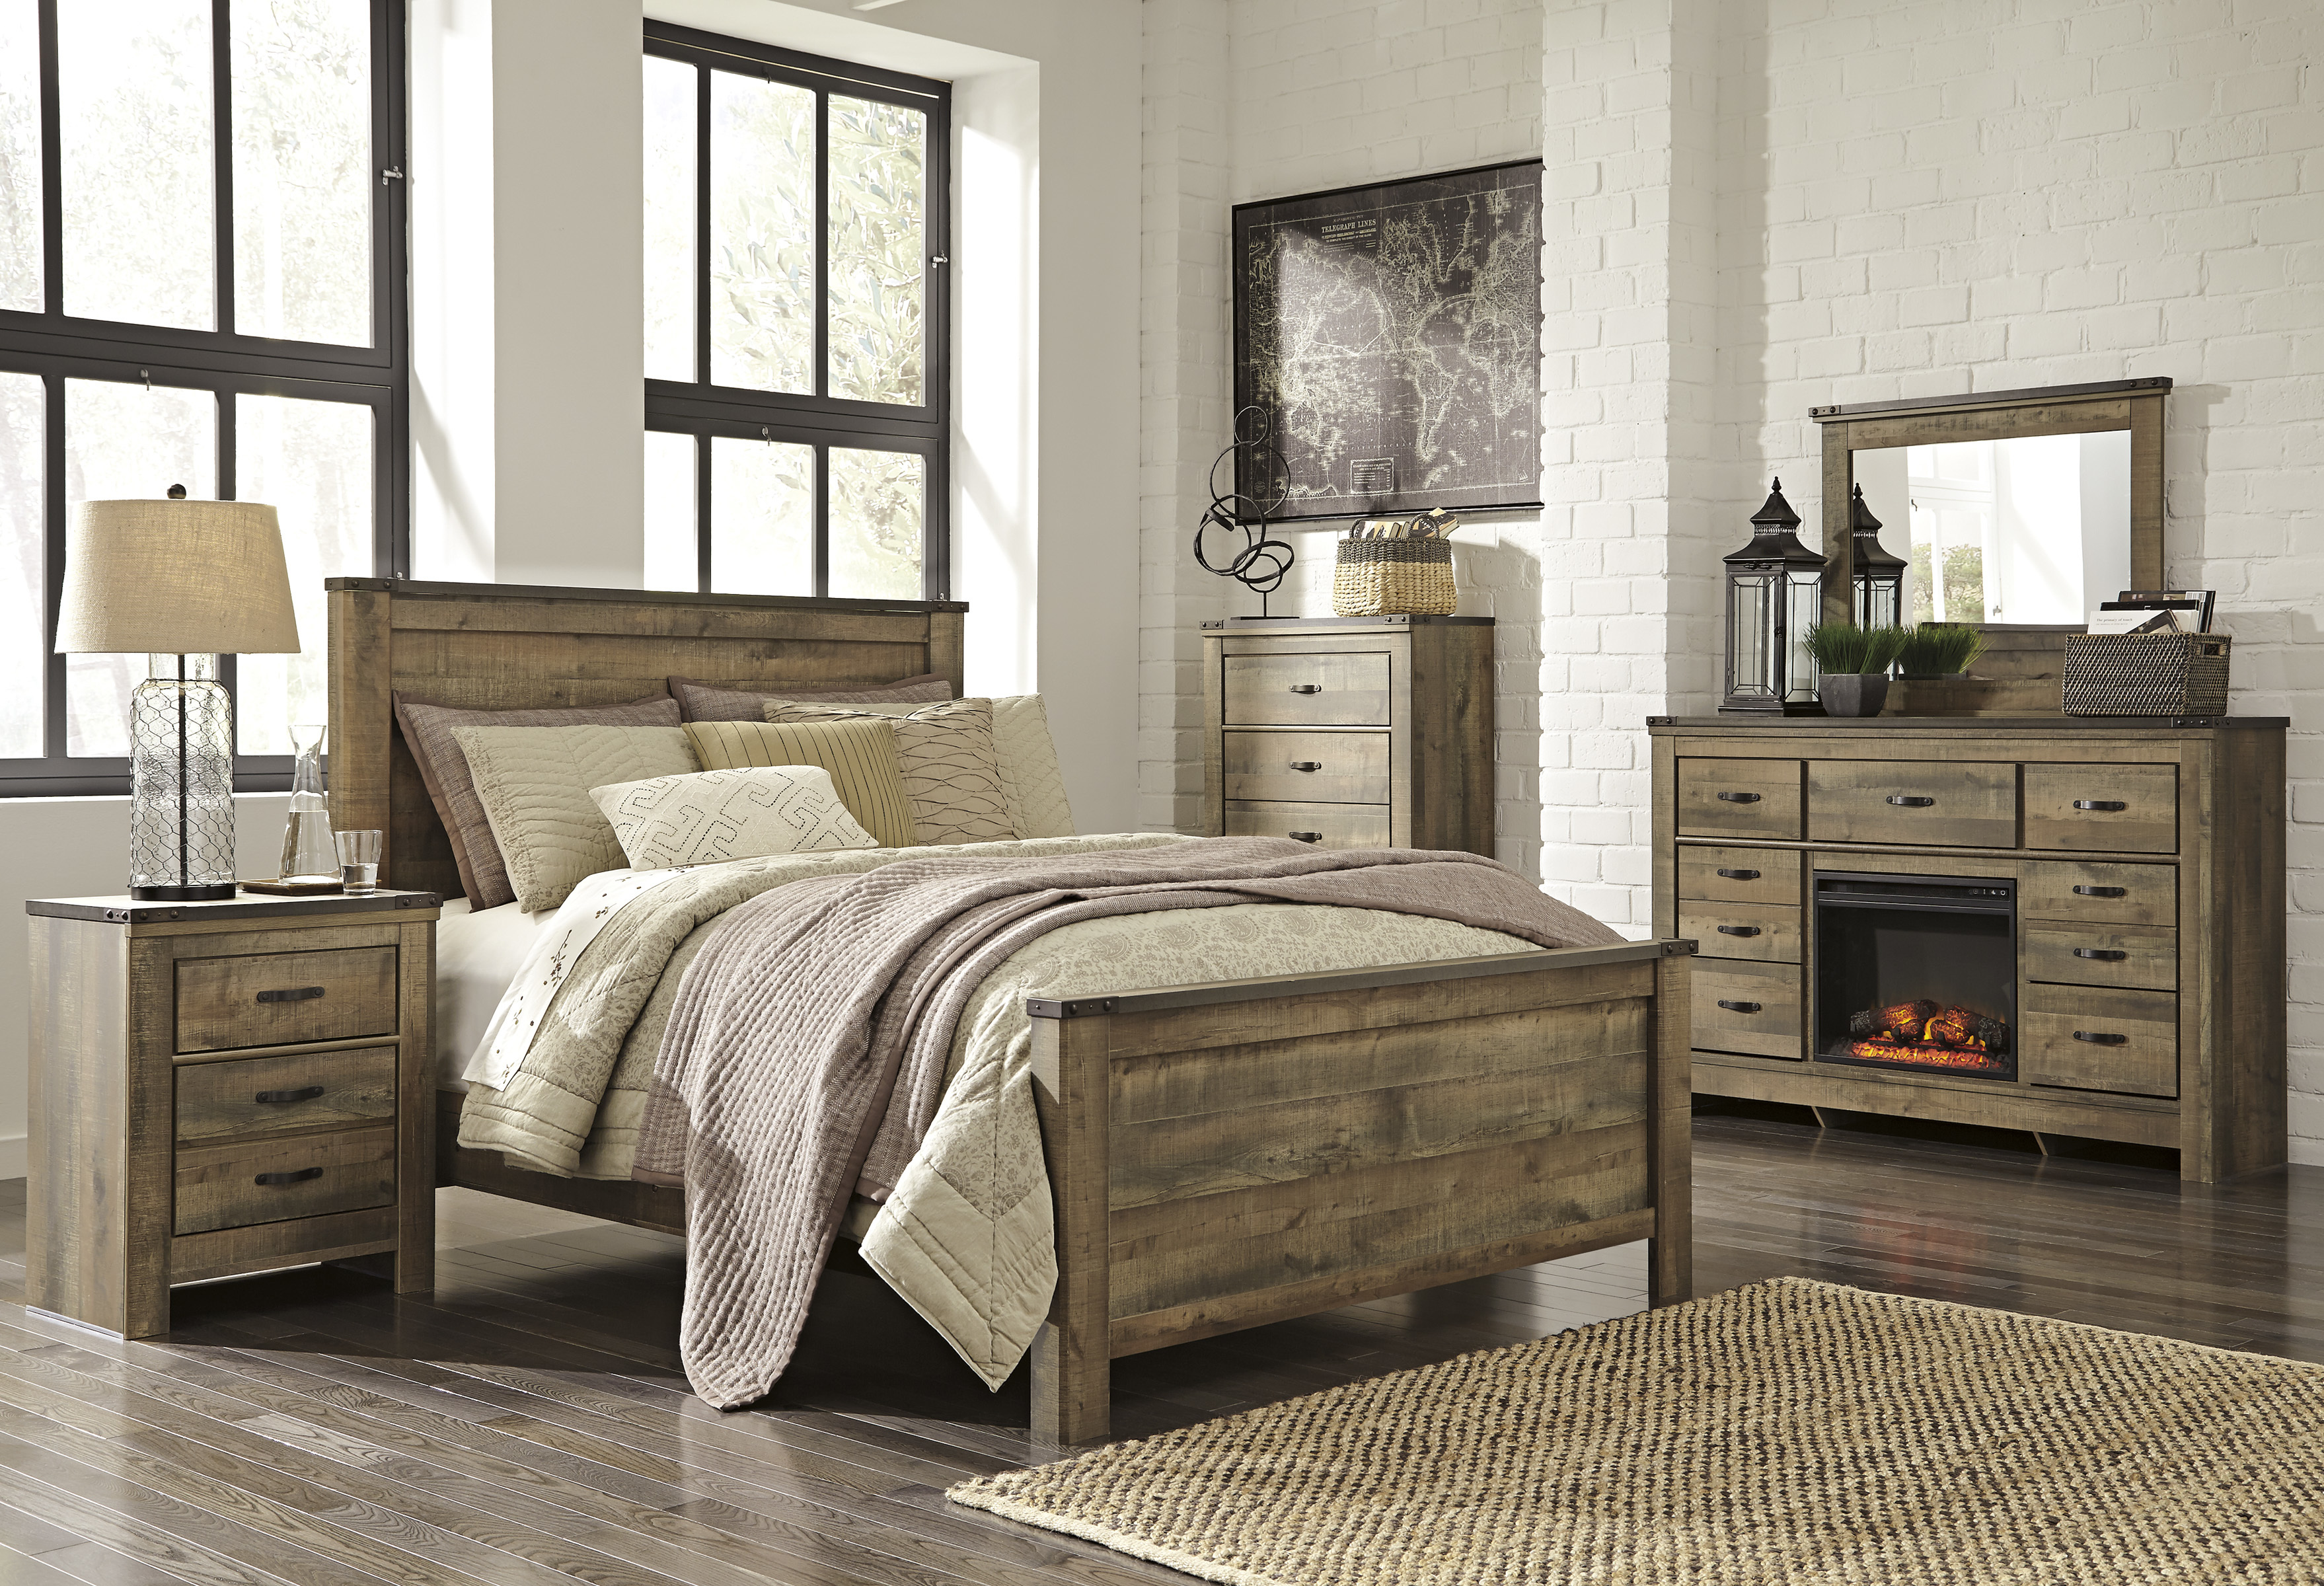 Utah Rustic Furniture By Bradleys Natural Talalay Latex Mattress And Topper In